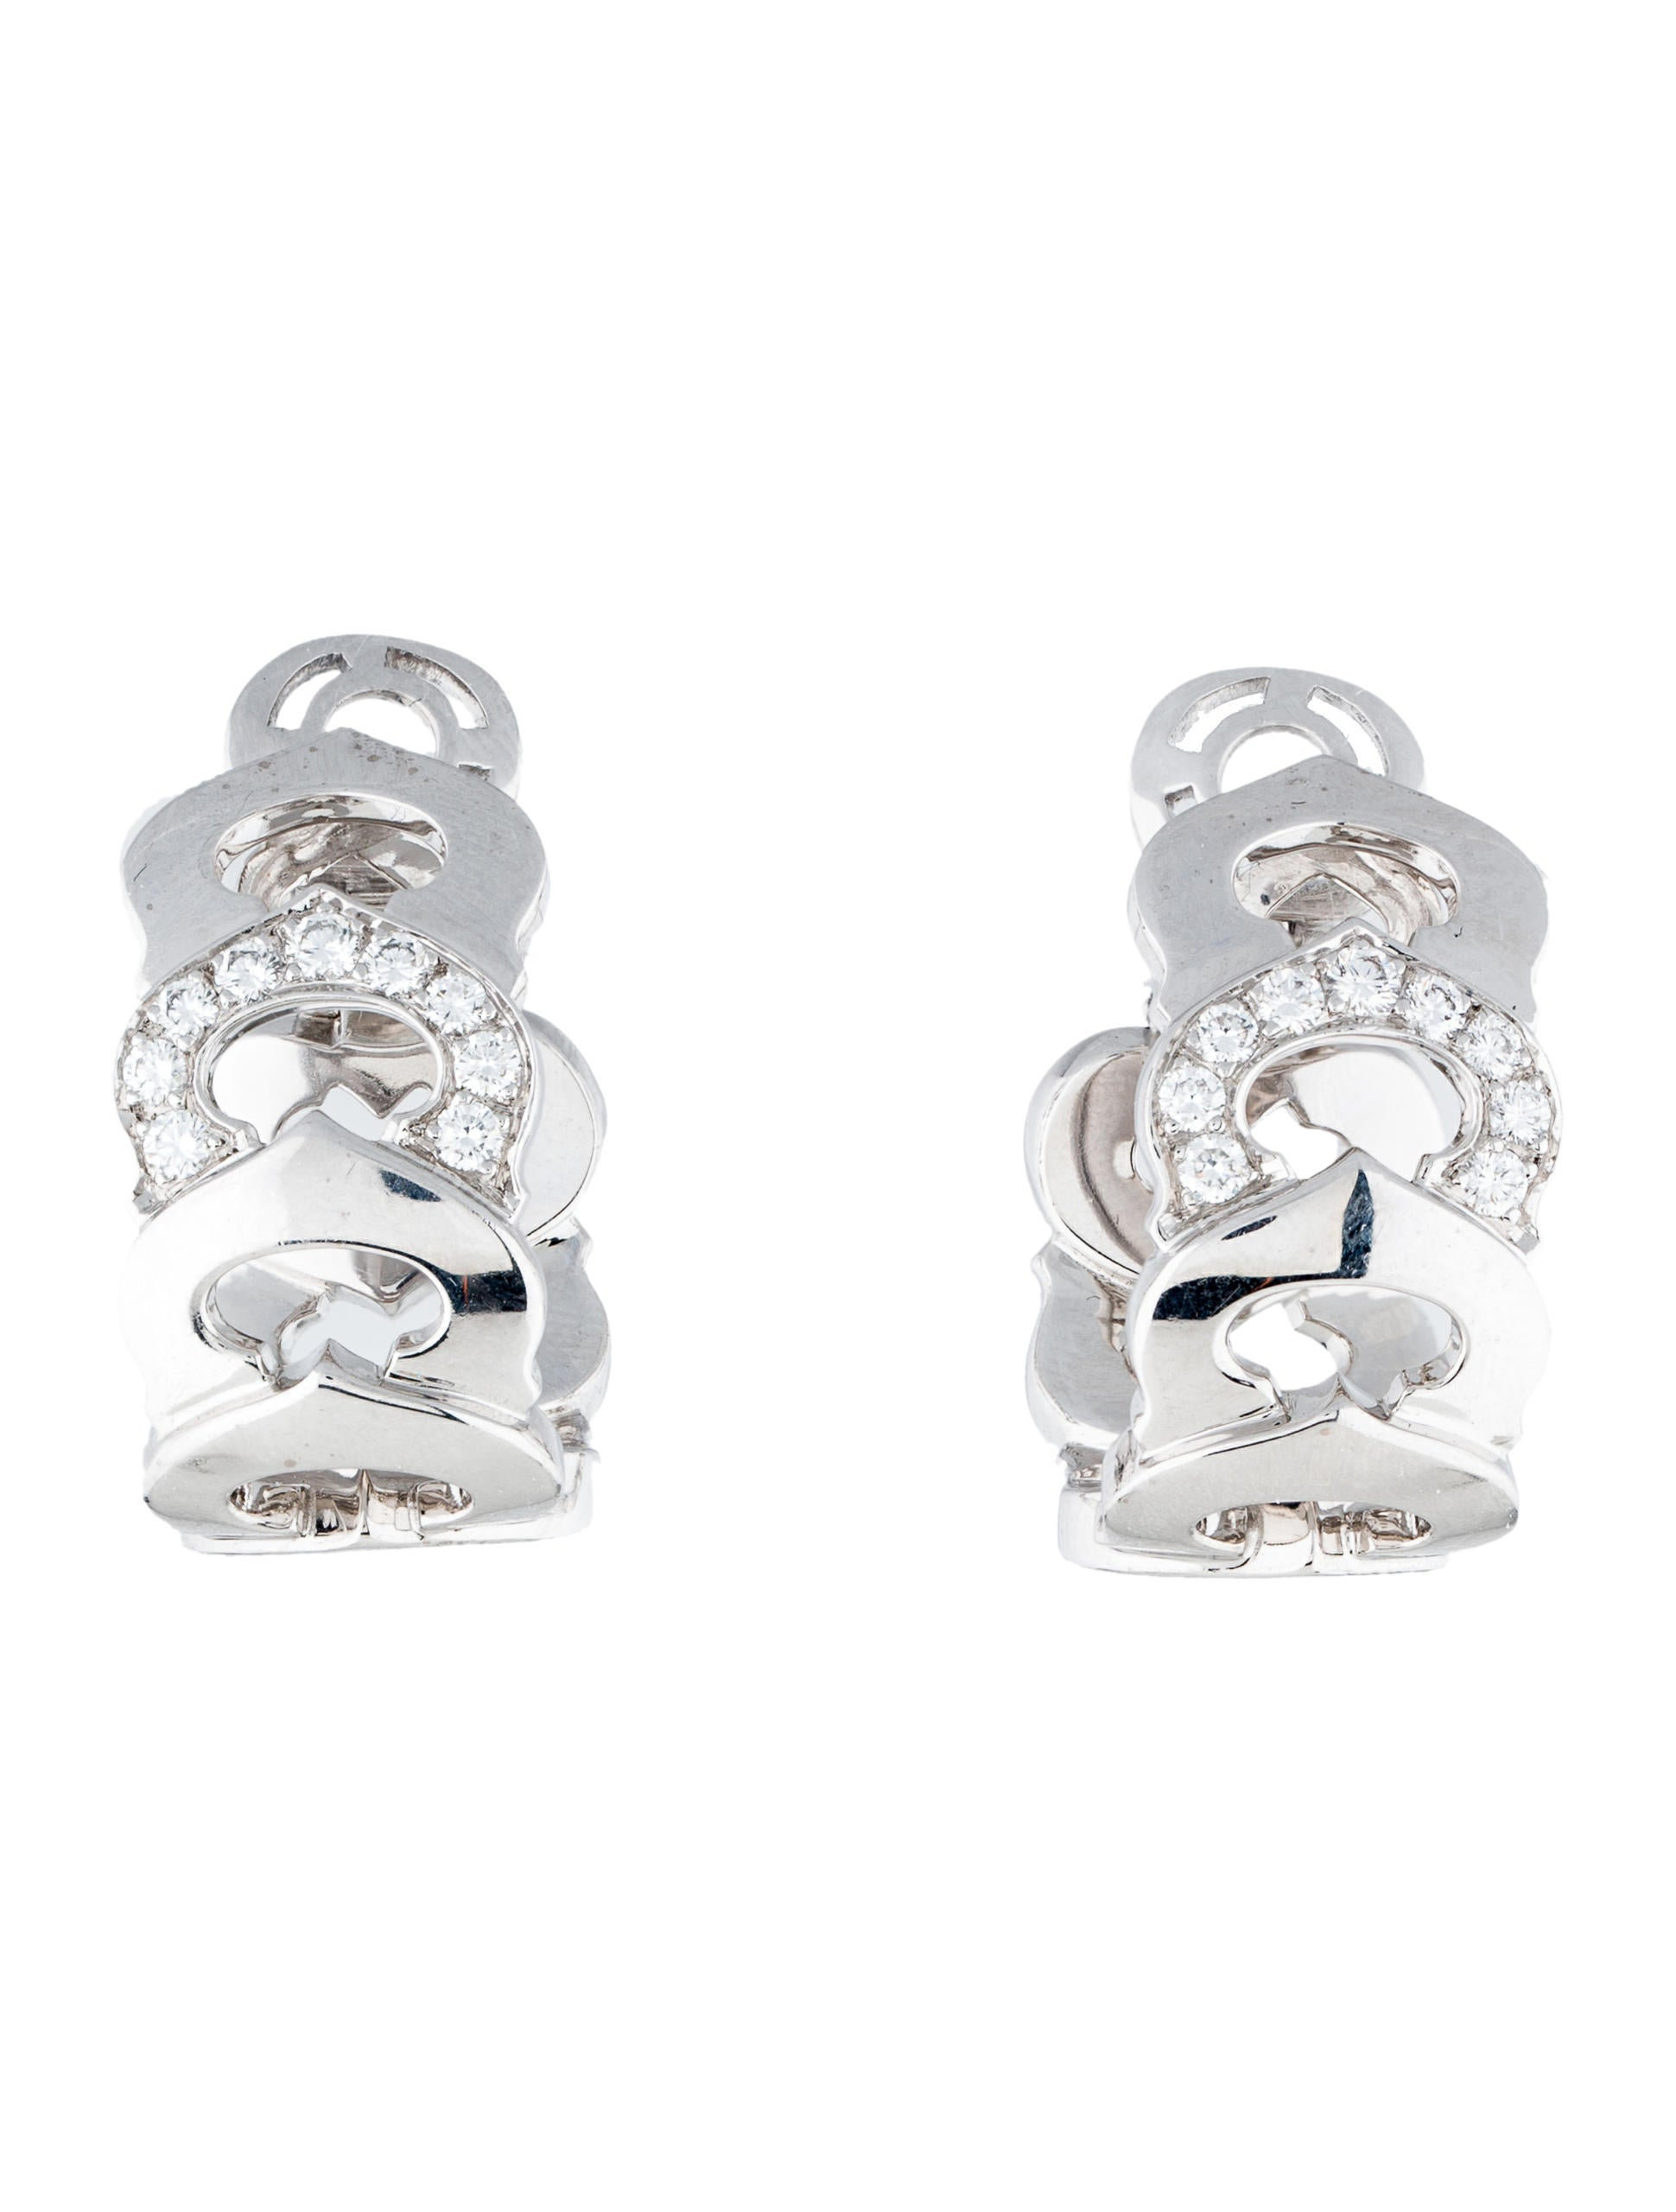 store diamond earrings real hortense post d white hortenese double bespoke